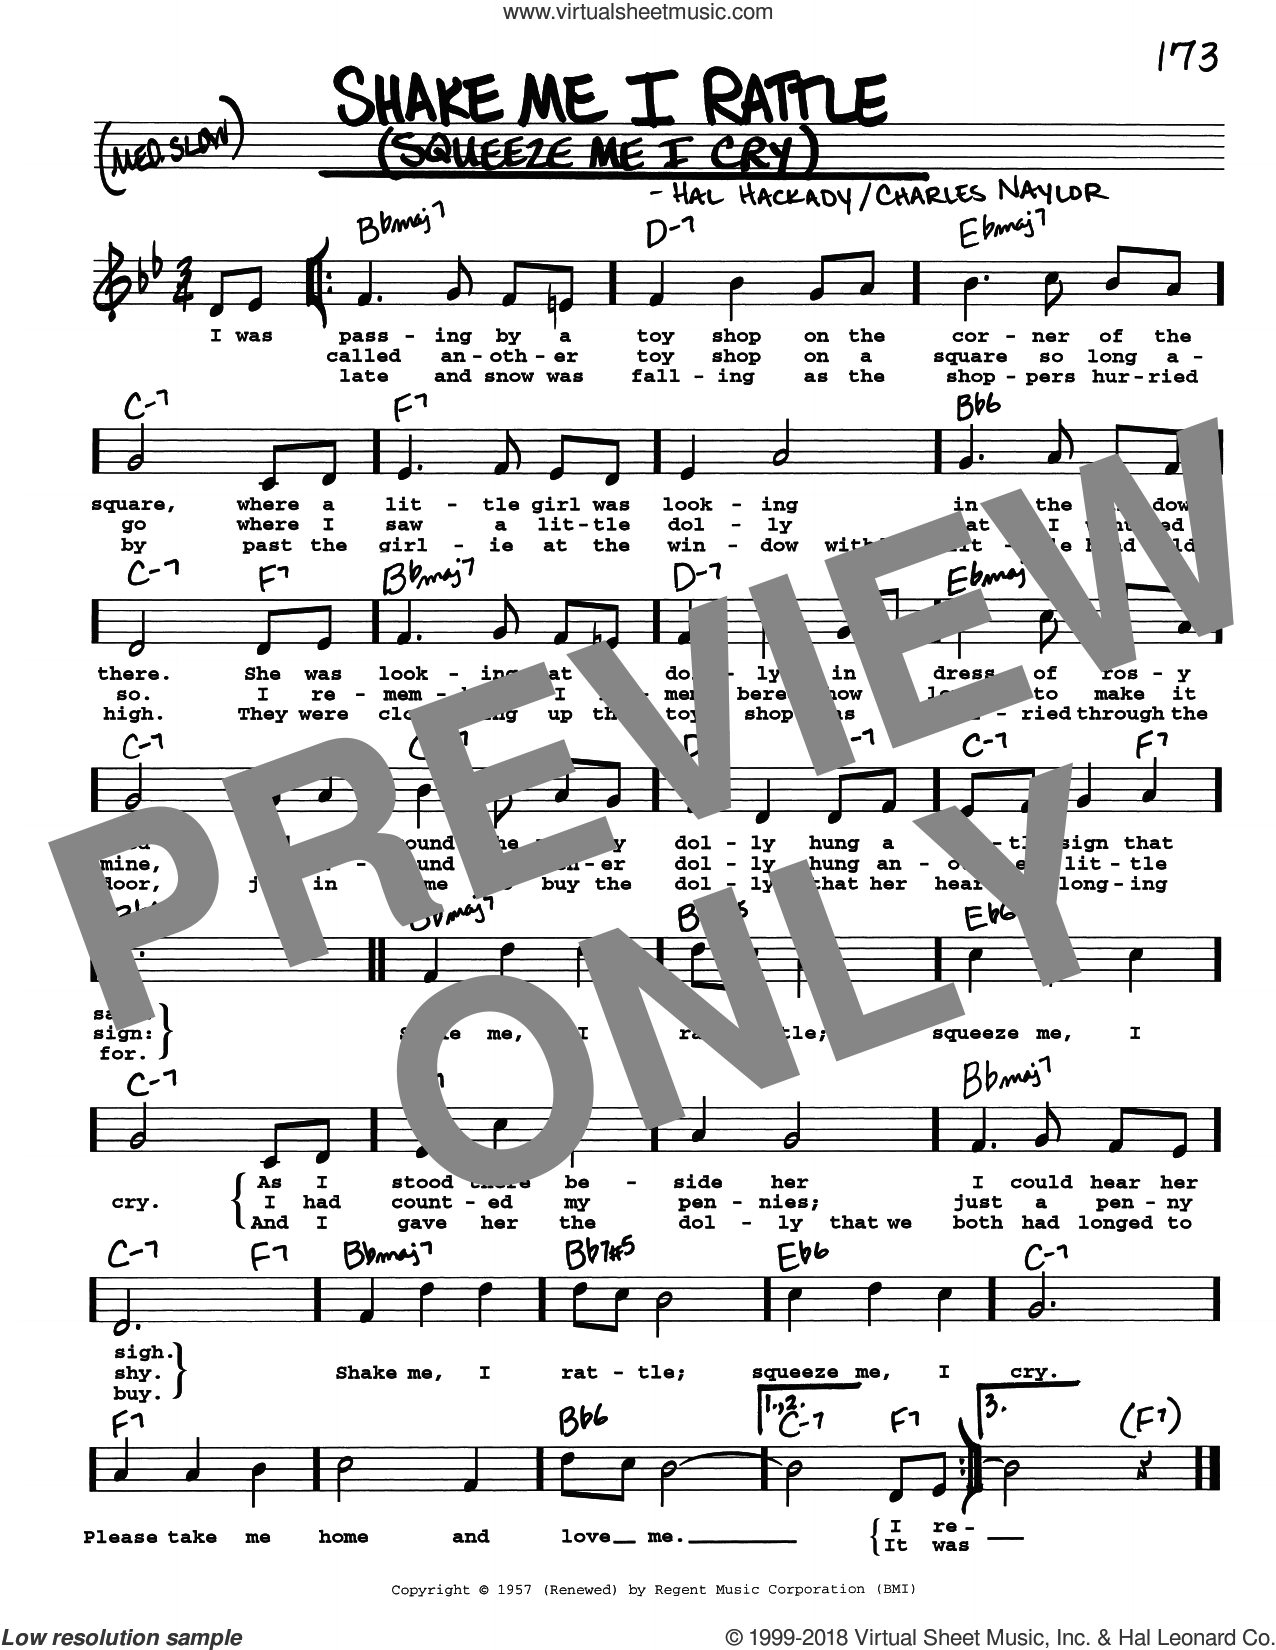 Shake Me I Rattle (Squeeze Me I Cry) sheet music for voice and other instruments (real book with lyrics) by Hal Clayton Hackady and Charles Naylor, intermediate skill level